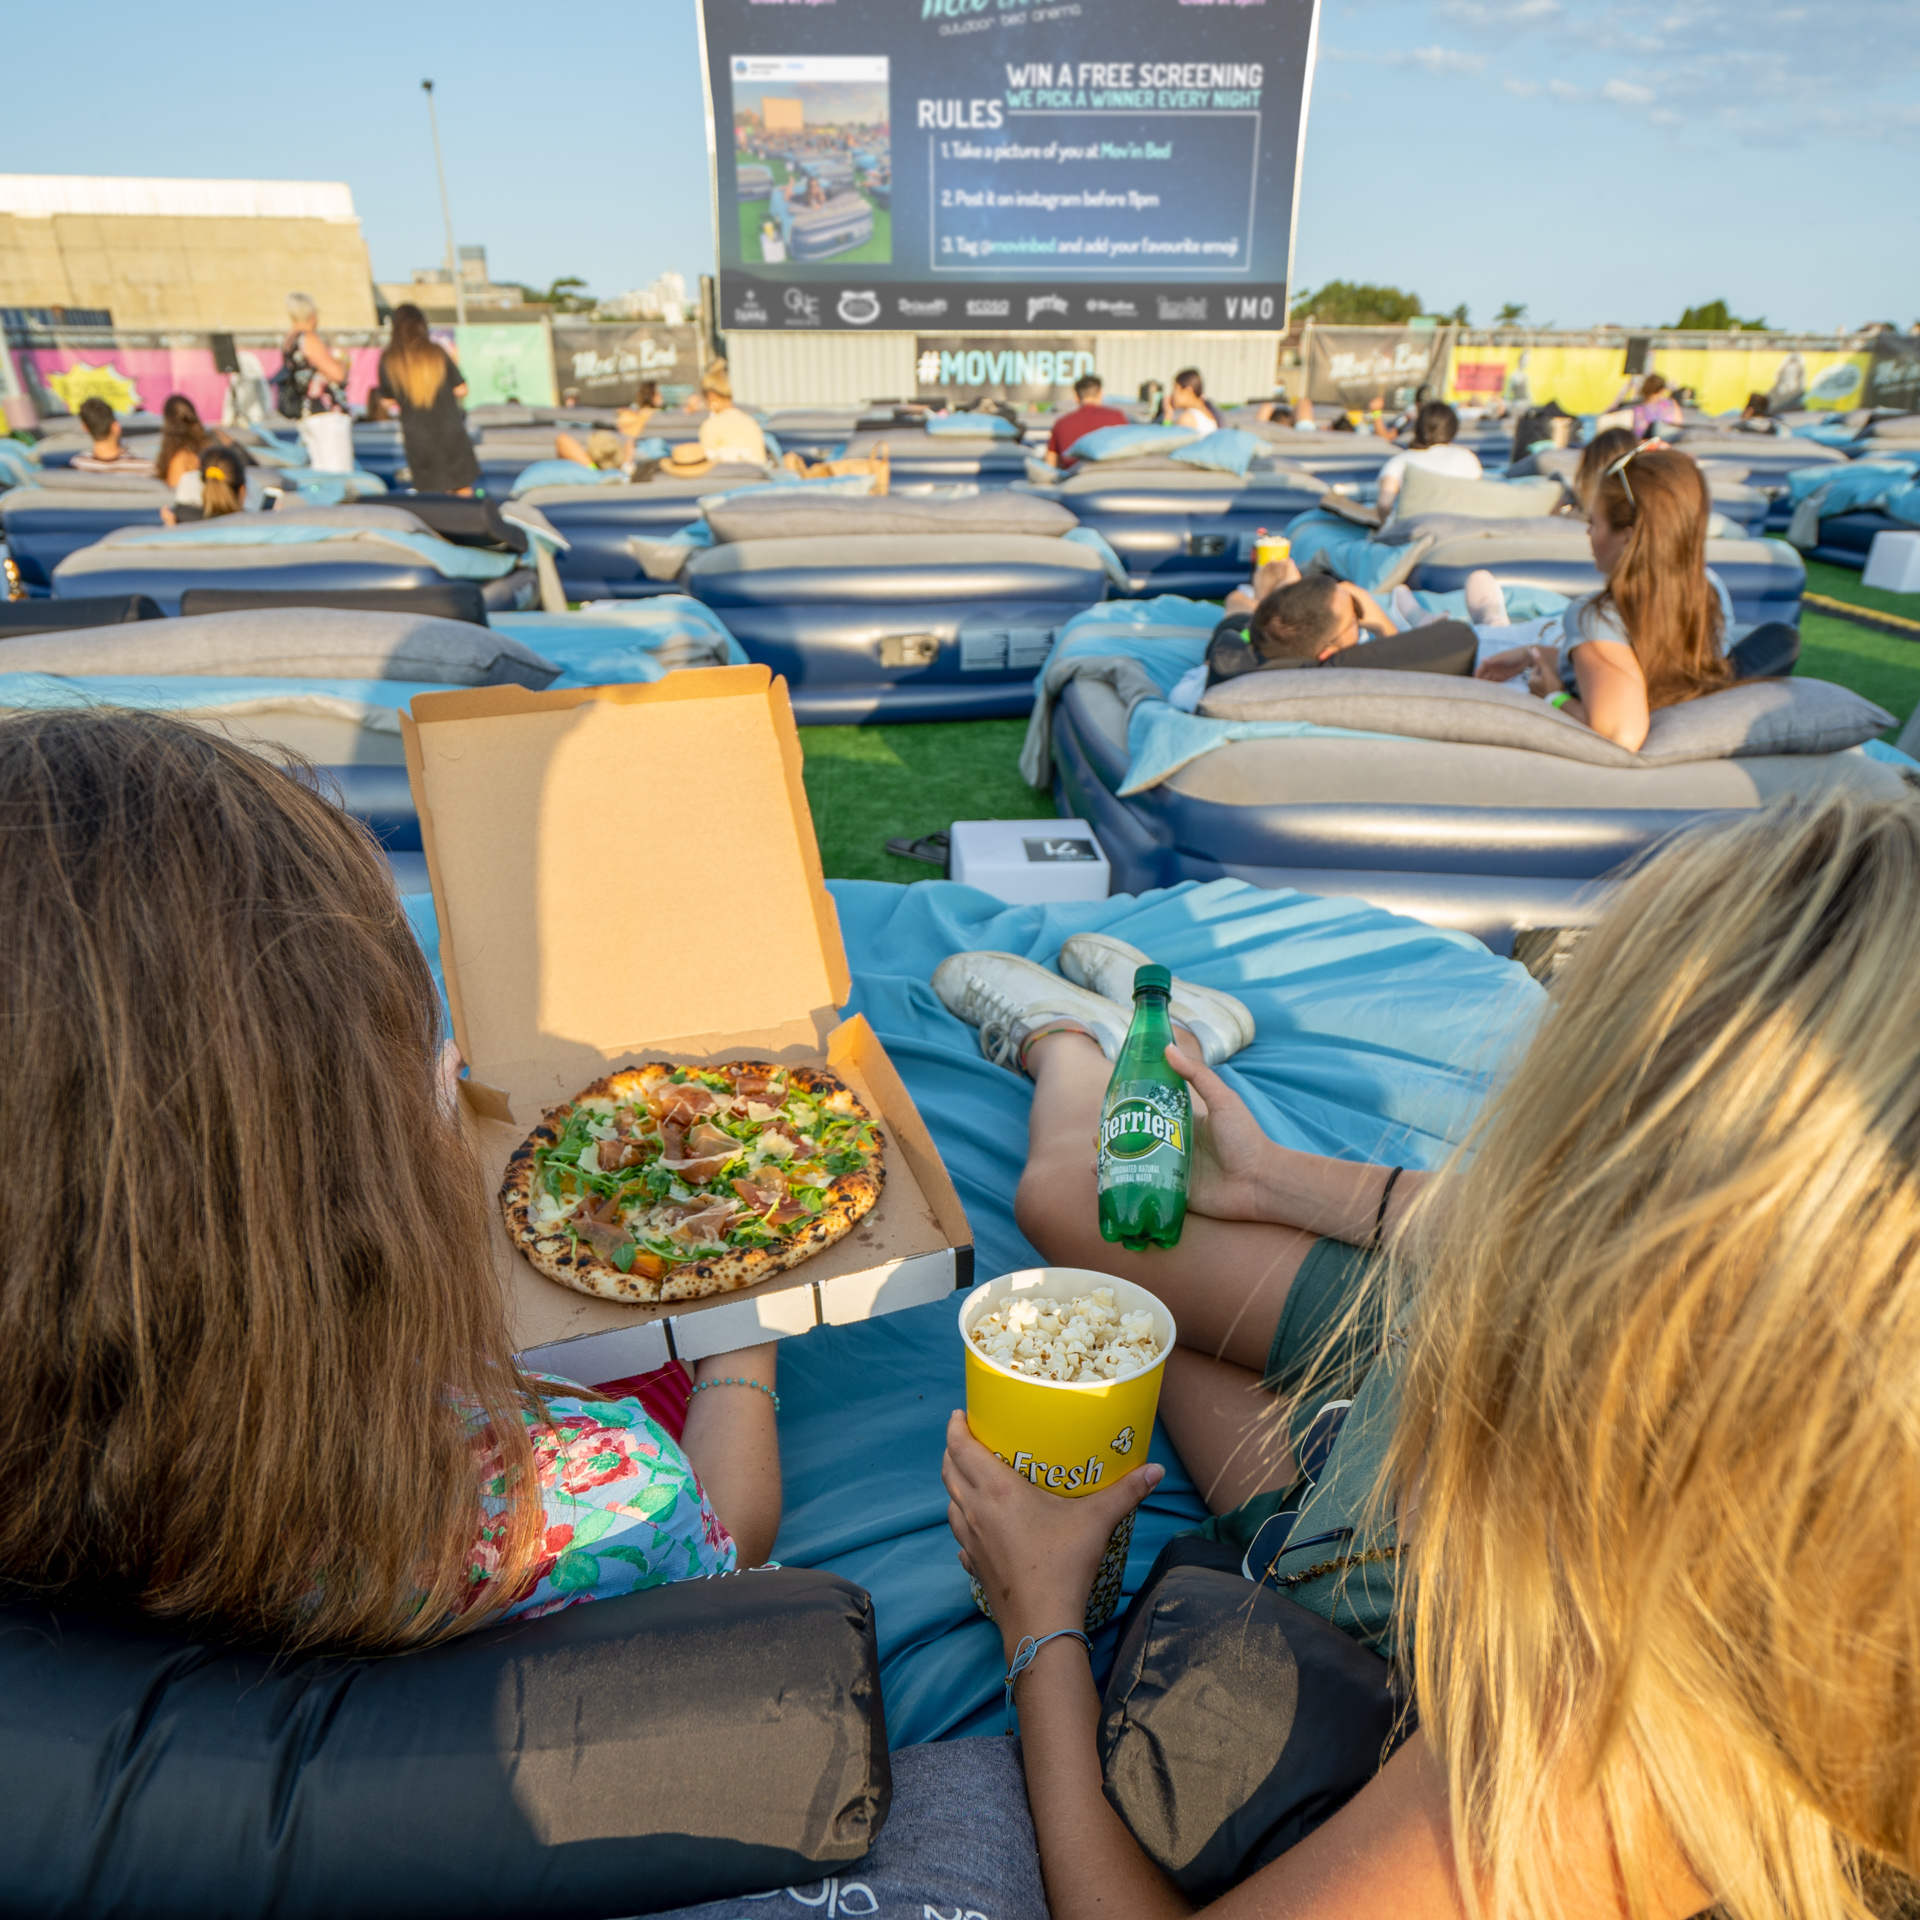 Brisbane's First Outdoor Bed Cinema